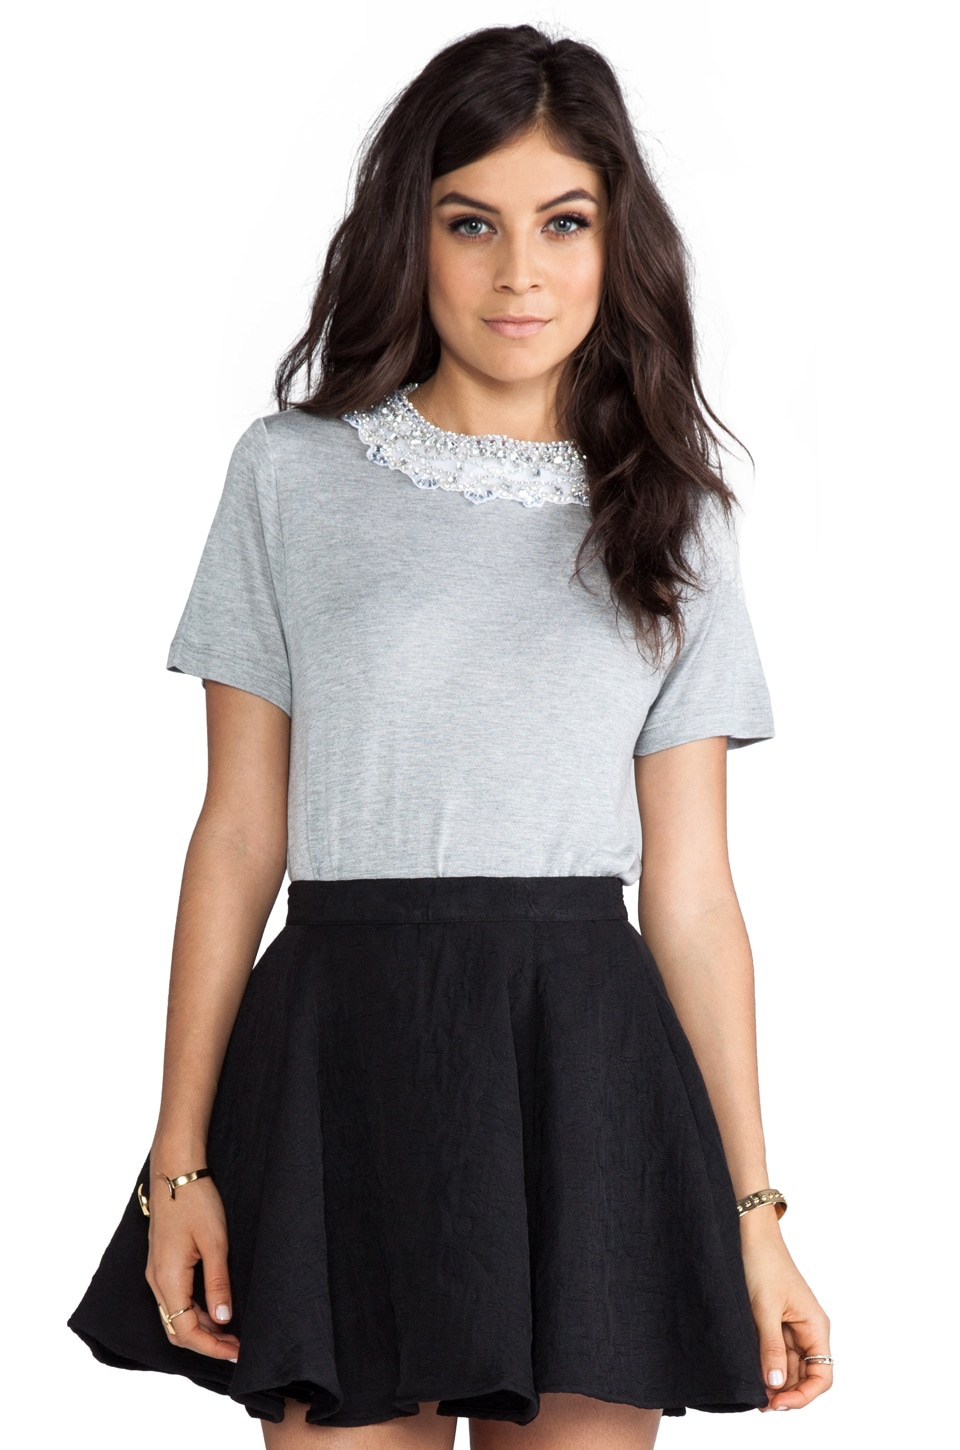 Haute Hippie Embellished Crew Neck Tee in Light Heather Grey/Crystal